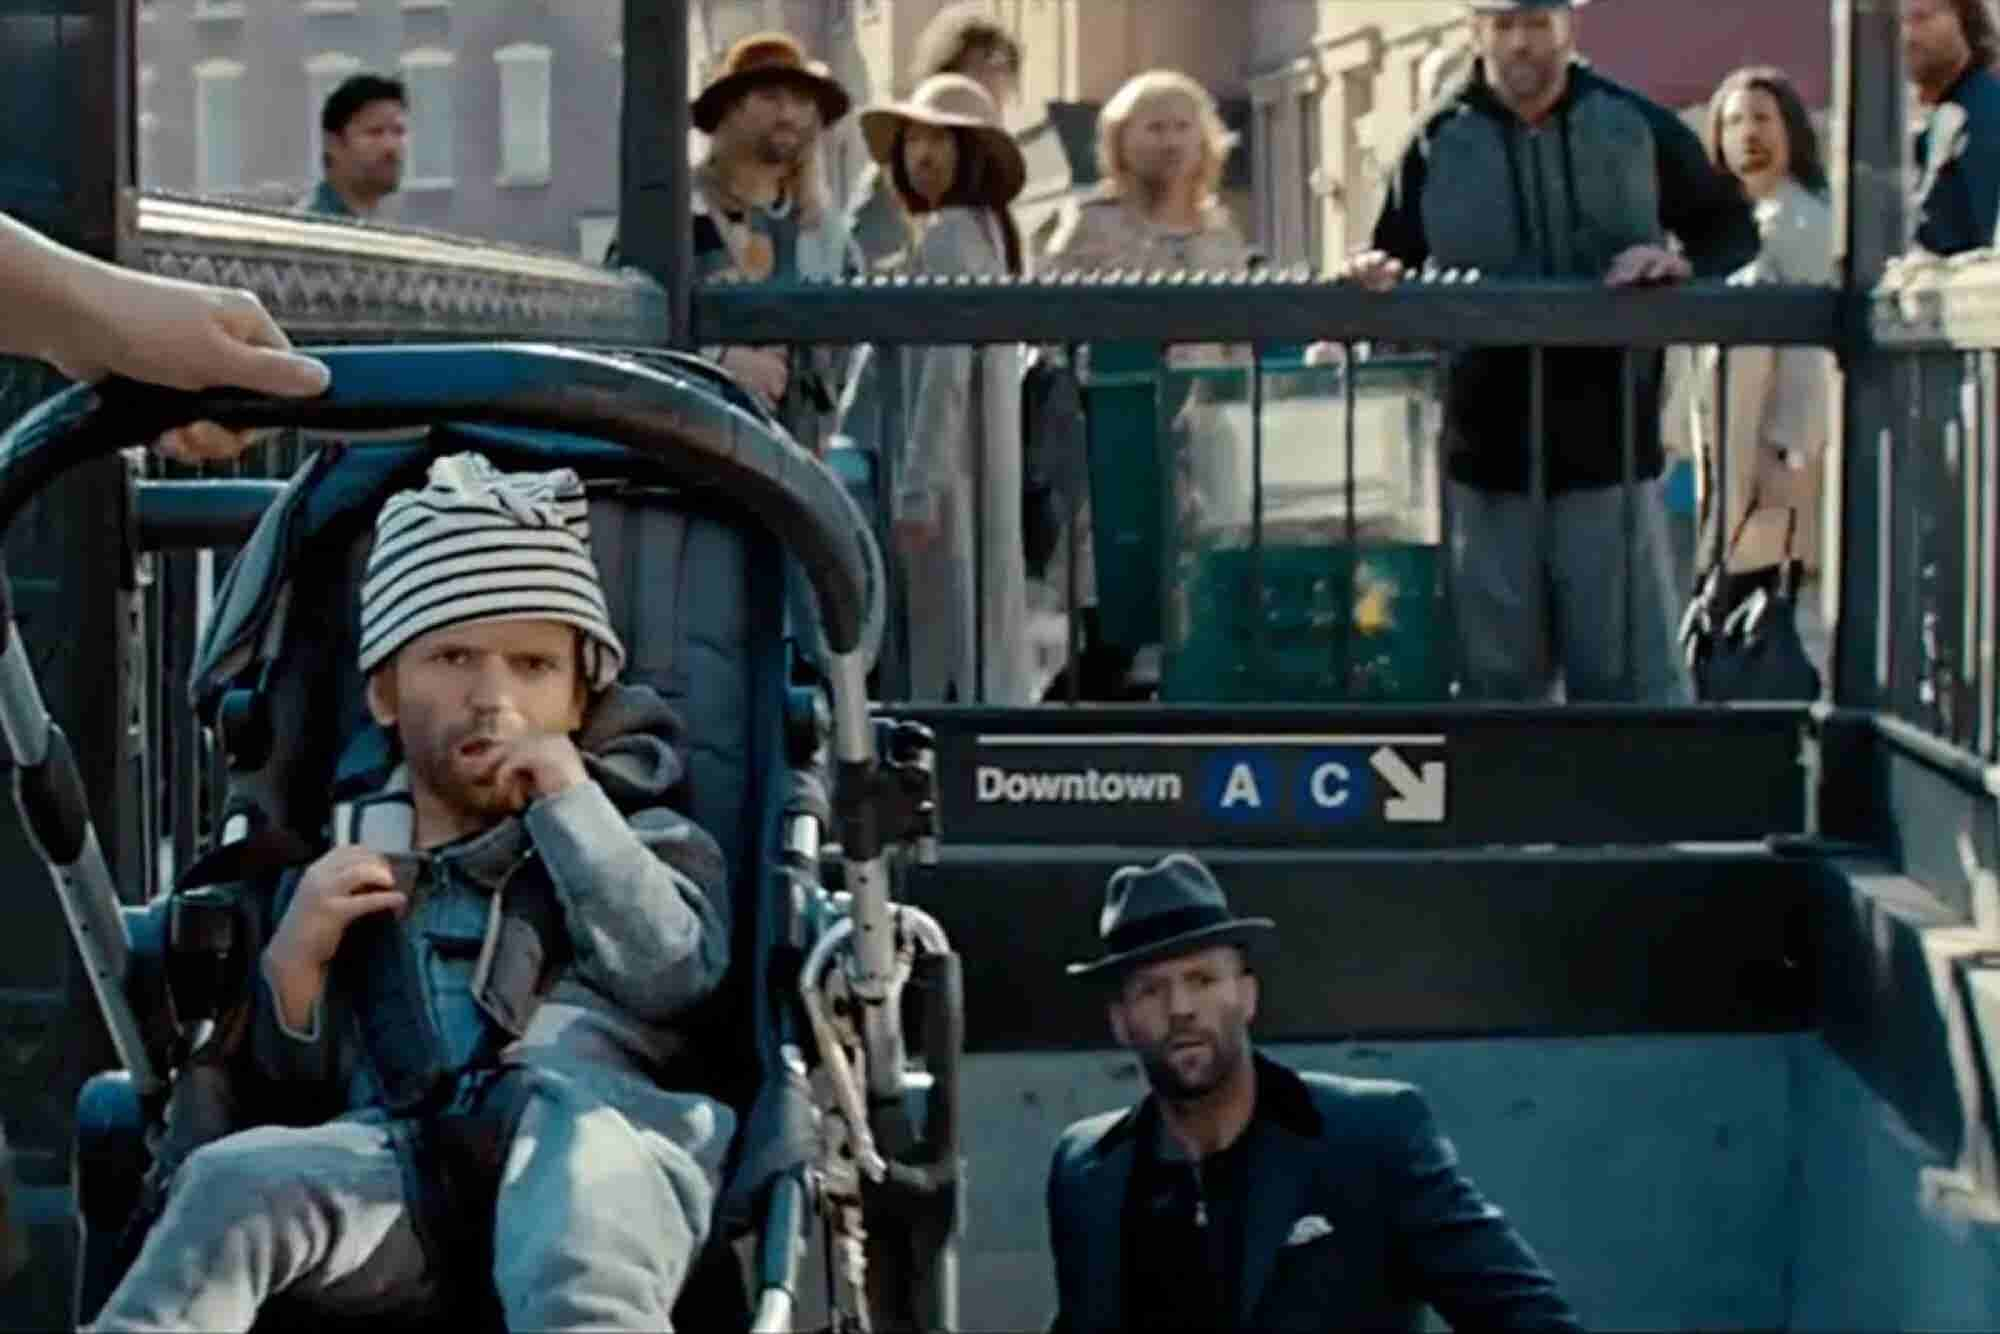 Brain Break: LG Releases Weird Ad With Jason Statham for its Weird New Phone